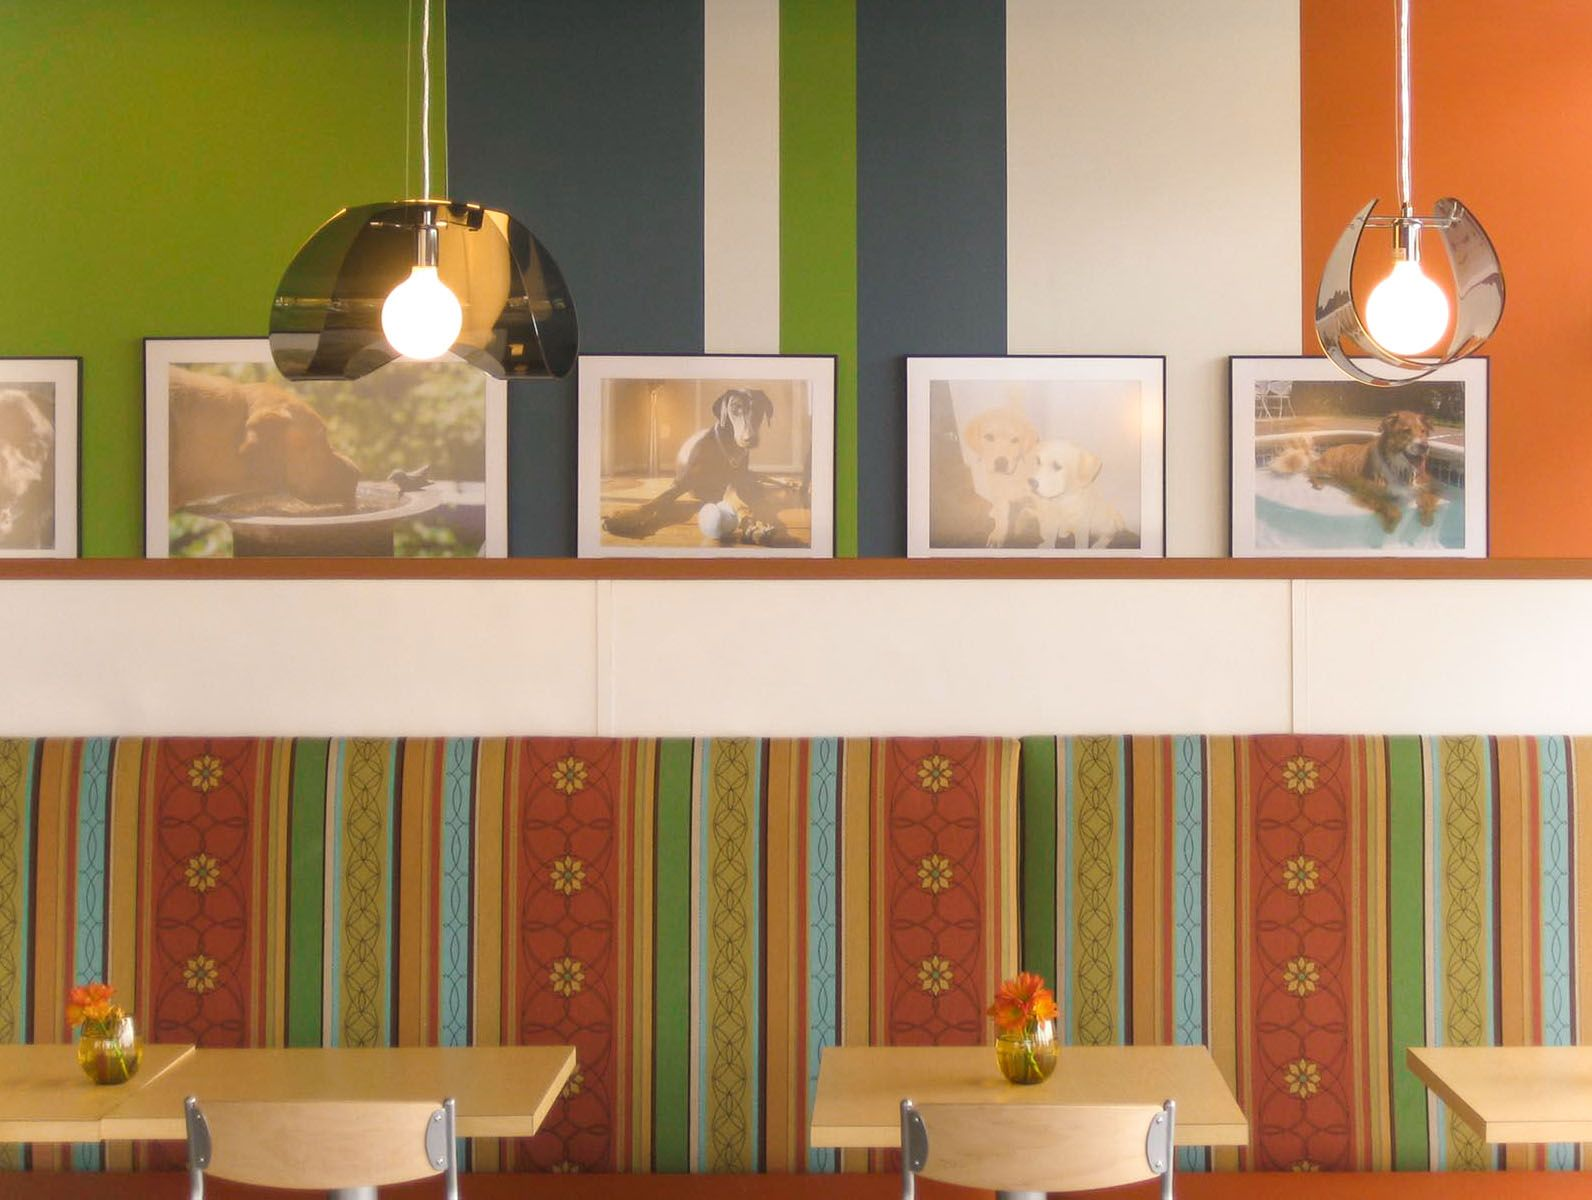 PureBread Deli - Pattern and Color Play. Design by Mitchell Associates.